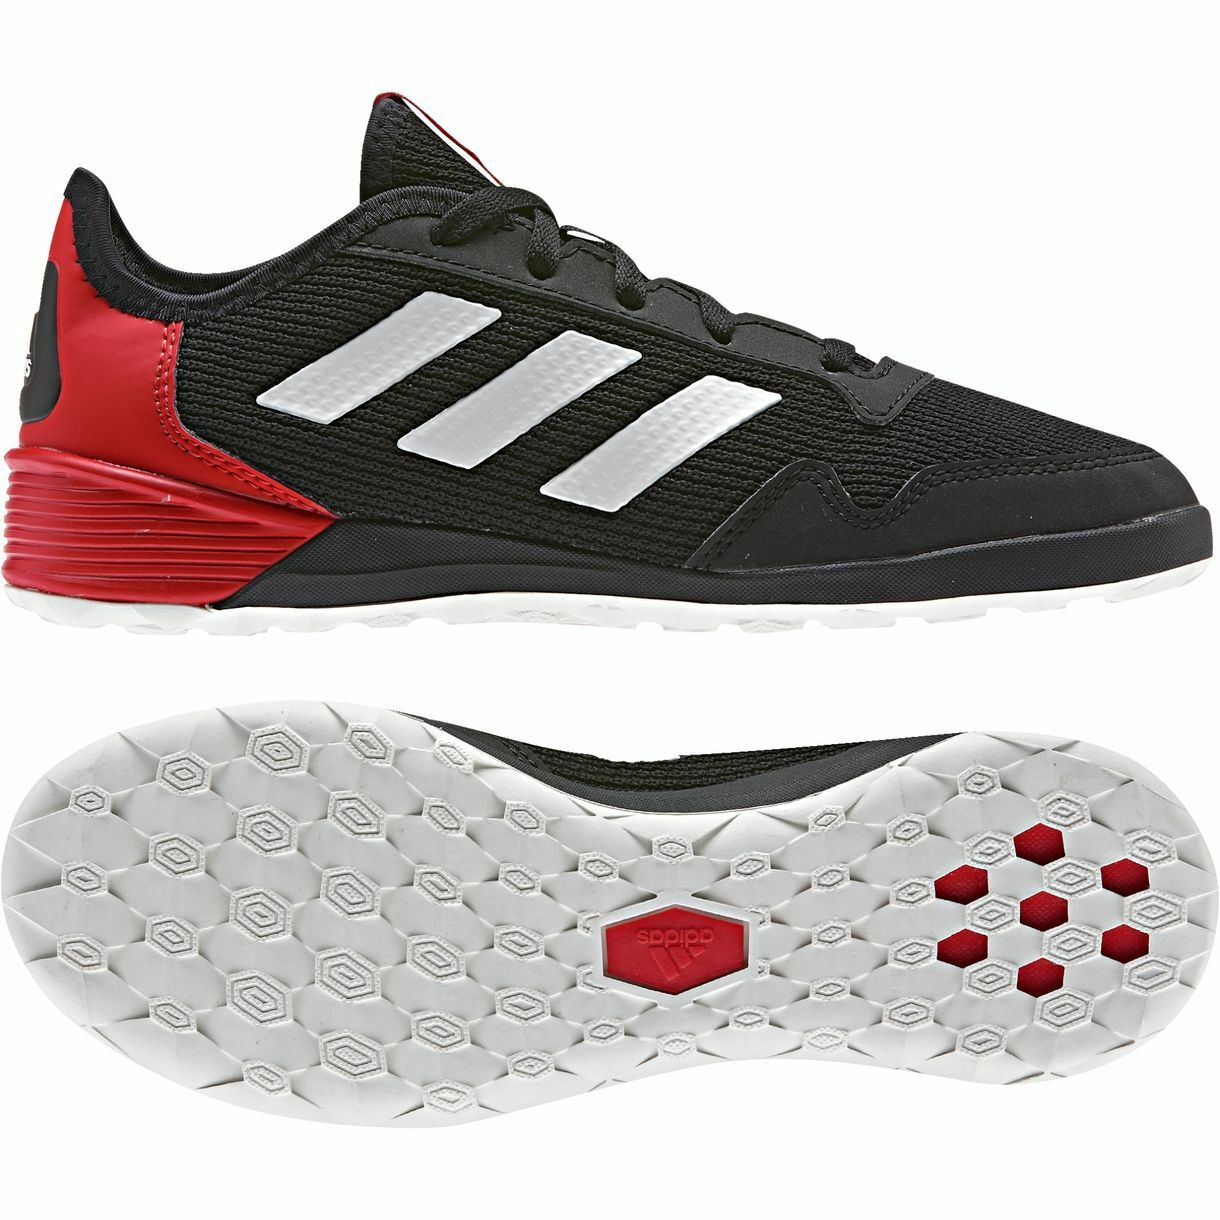 adidas Ace 17.2 Tango Shoes IN Indoor 2017 Soccer Shoes Tango Black / Red Kids - Youth 9f1211